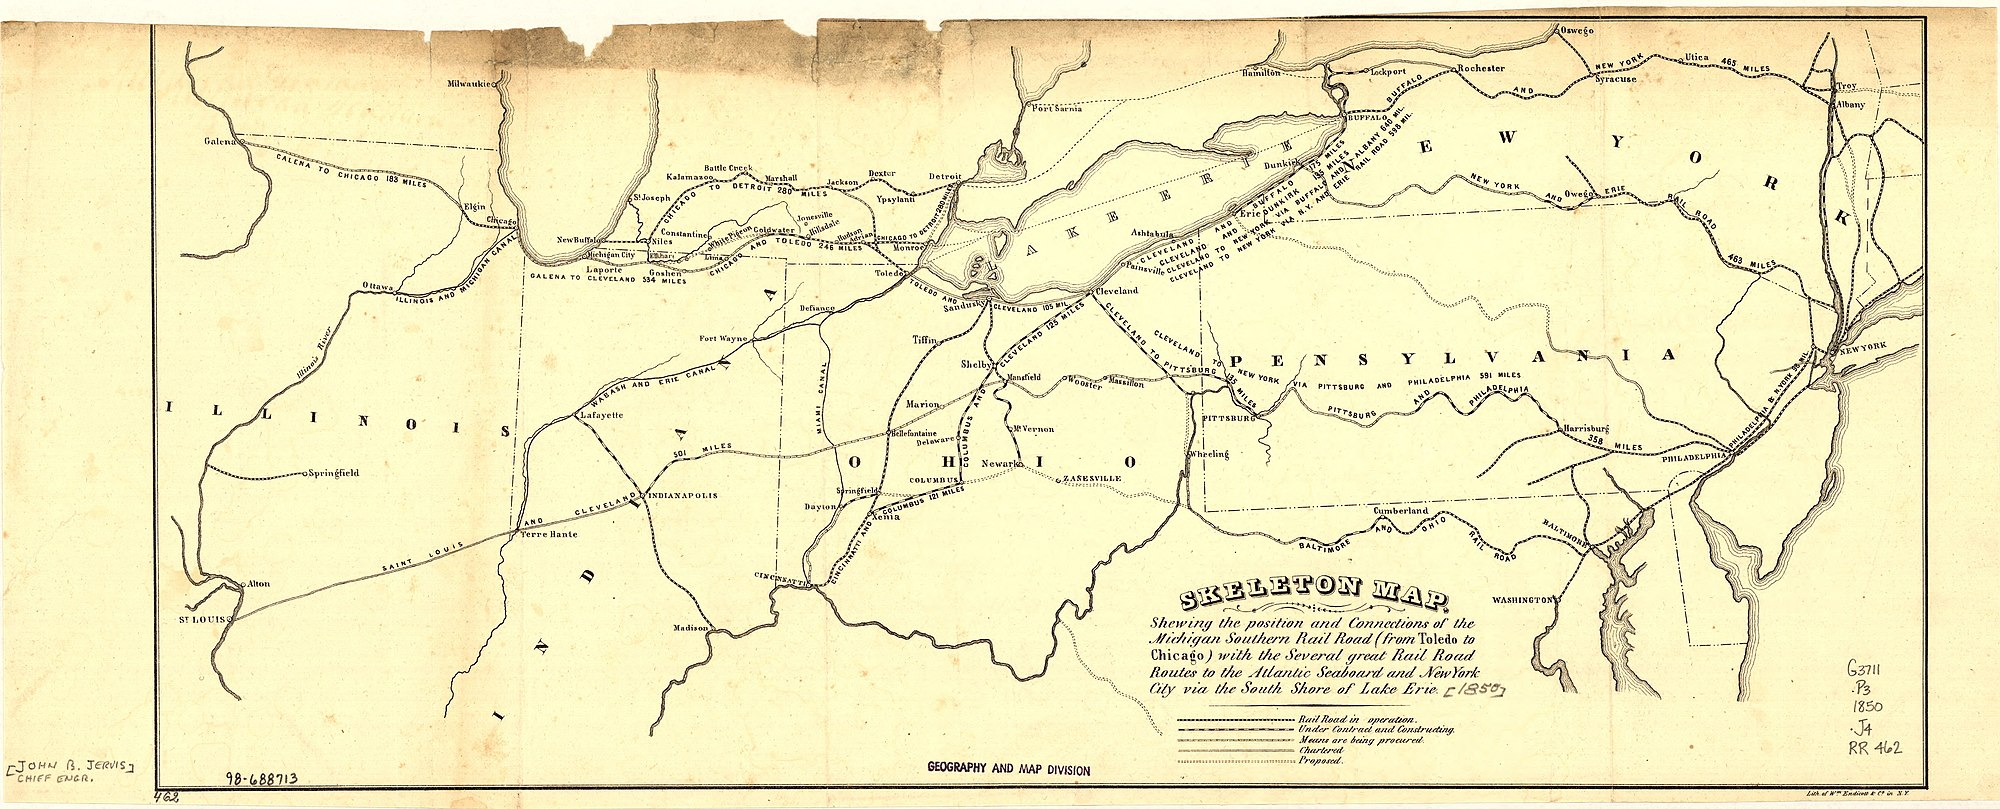 In this 1850 map, the original Wabash and Erie Canal is shown as part of an emerging system canals and rail lines